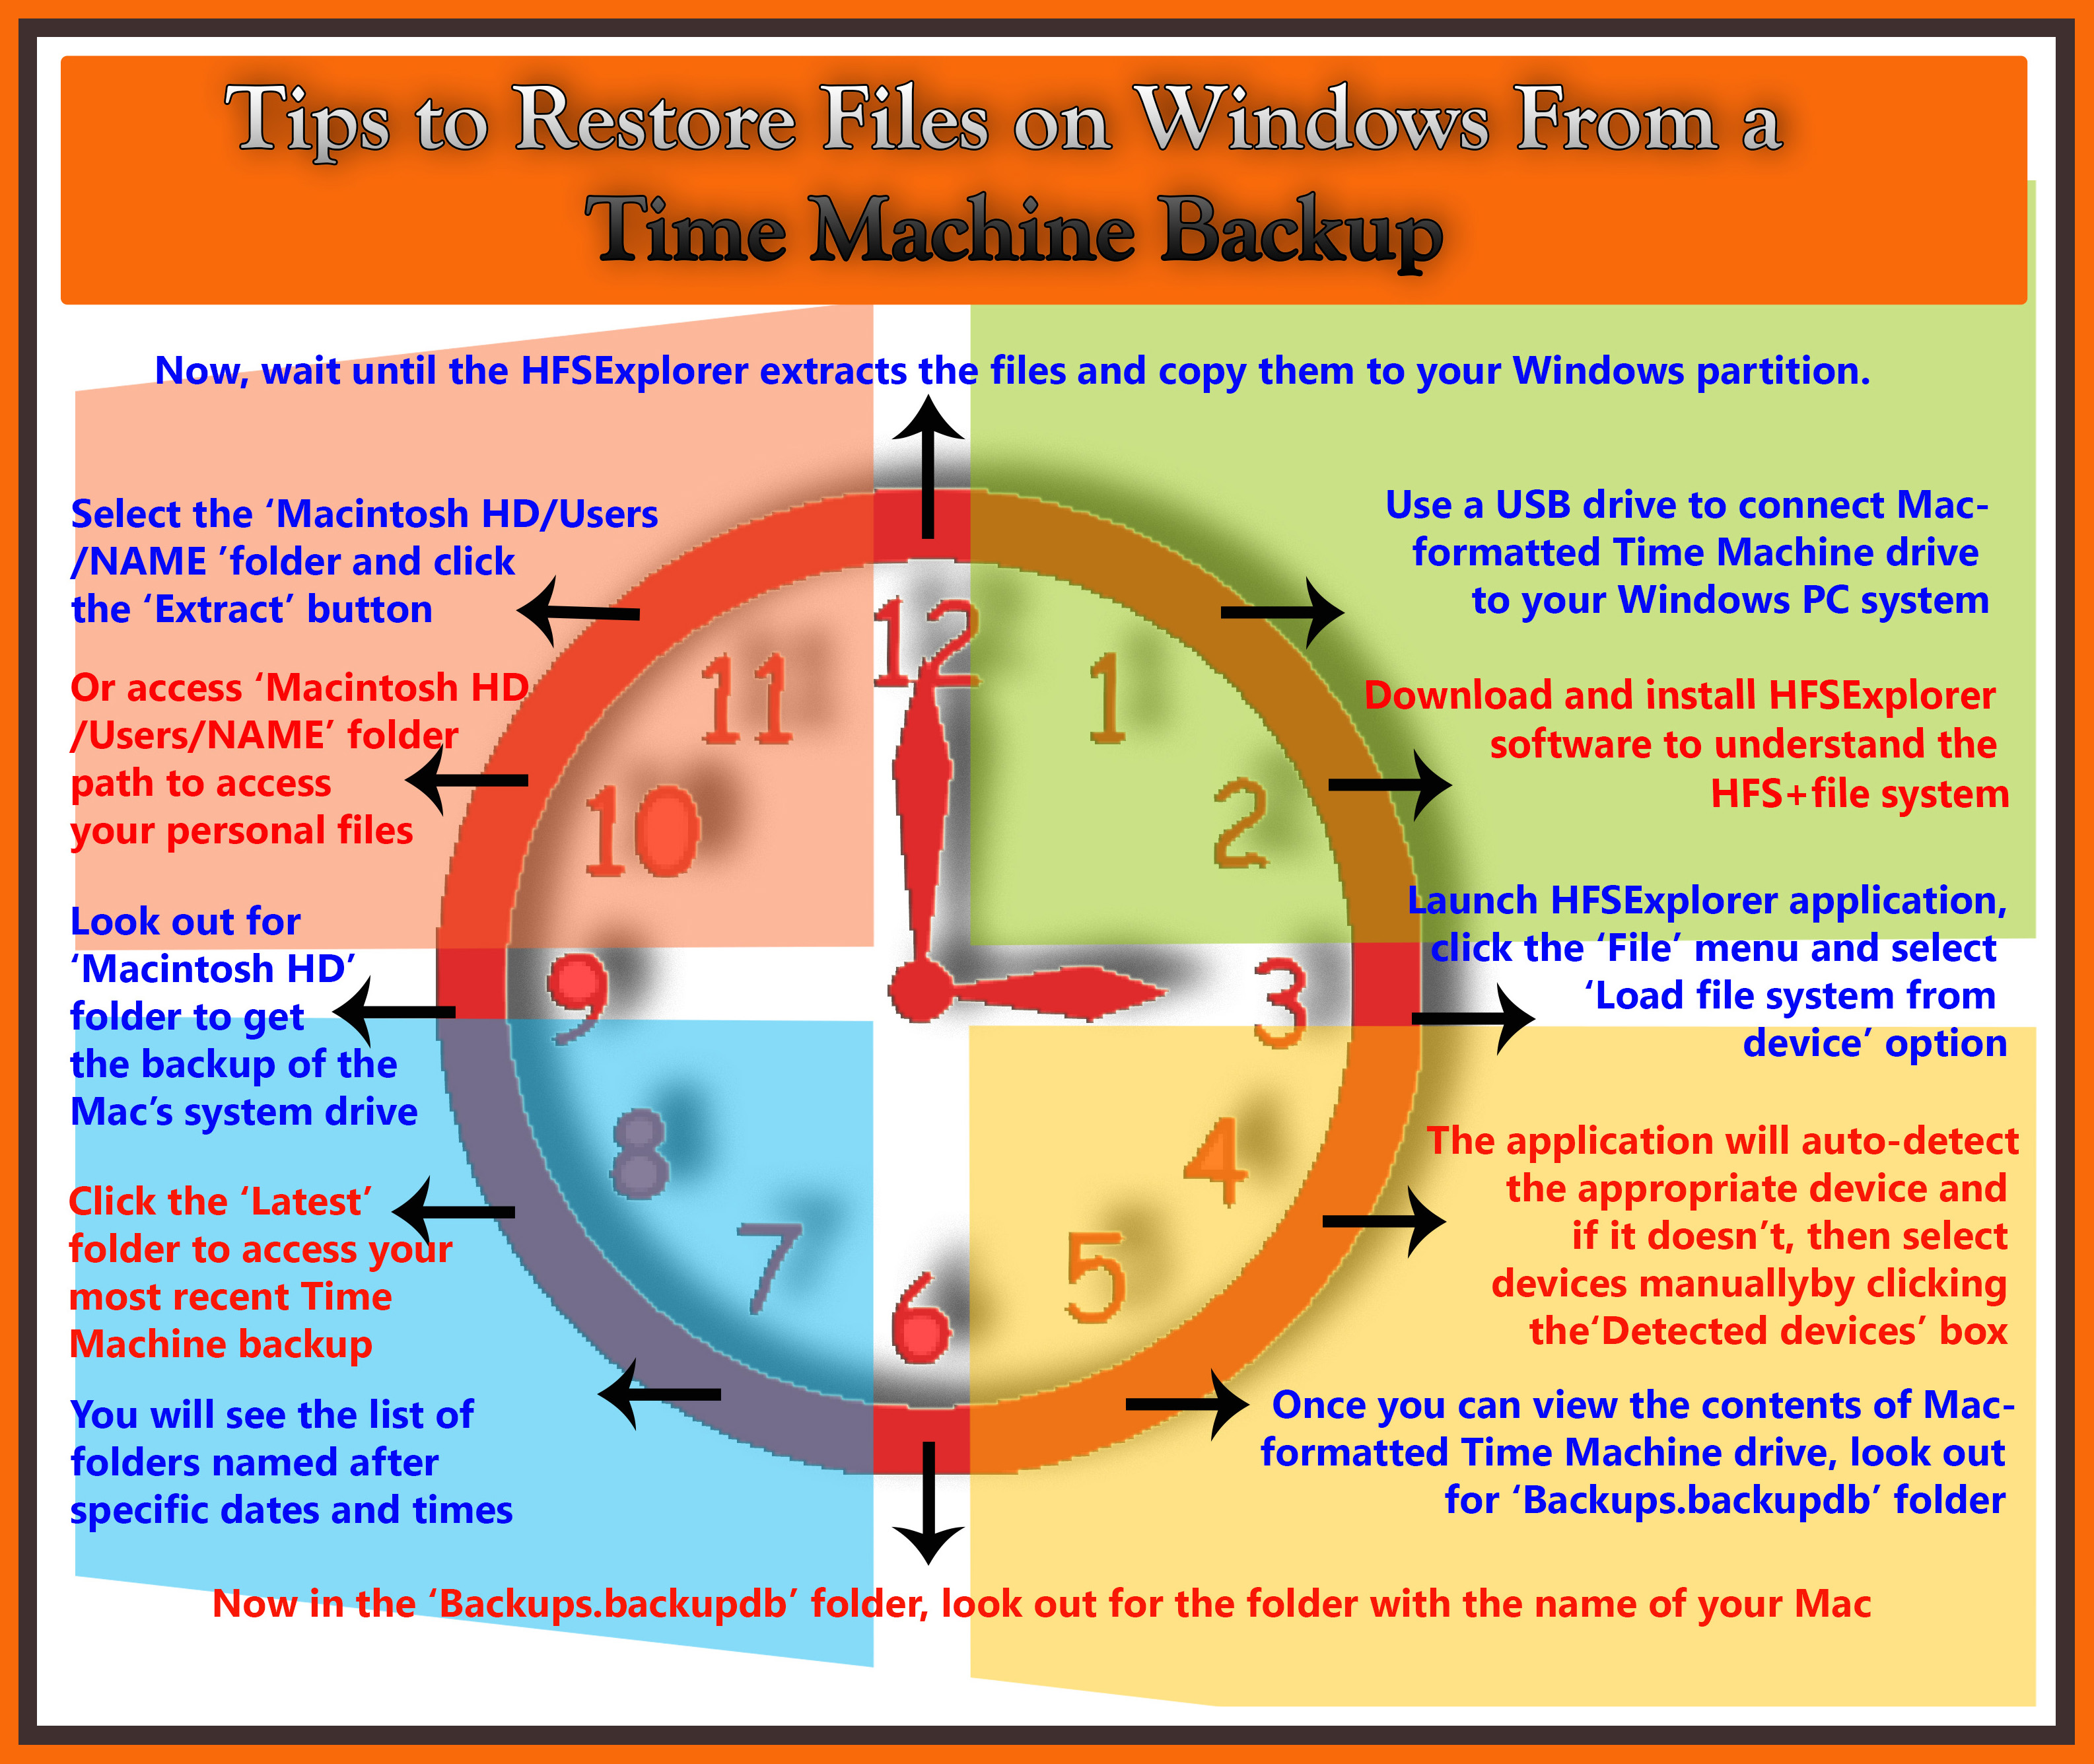 Tips to Restore Files on Windows From a Time Machine Backup   Visual.ly